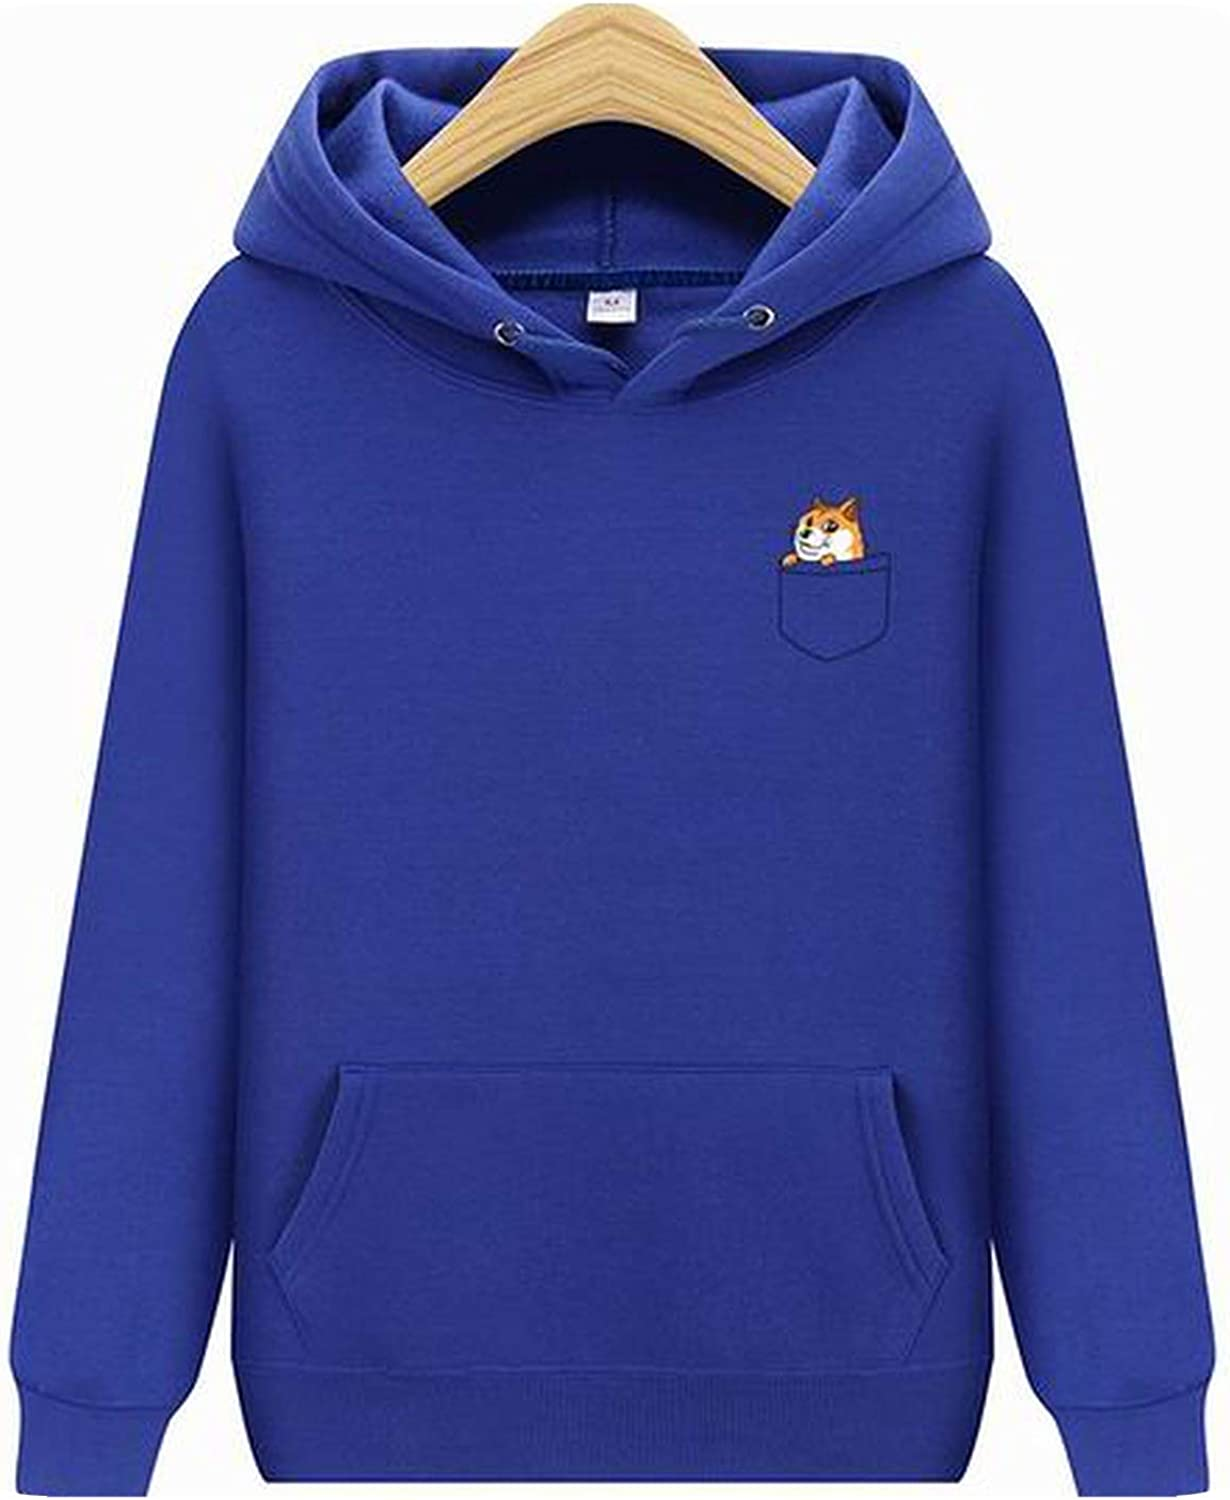 Big Big Beauty Men Hoodies Sweatshirt Pocket Letter Printed Casual Hoodies Sportswear Male Fleece Hooded Jacket